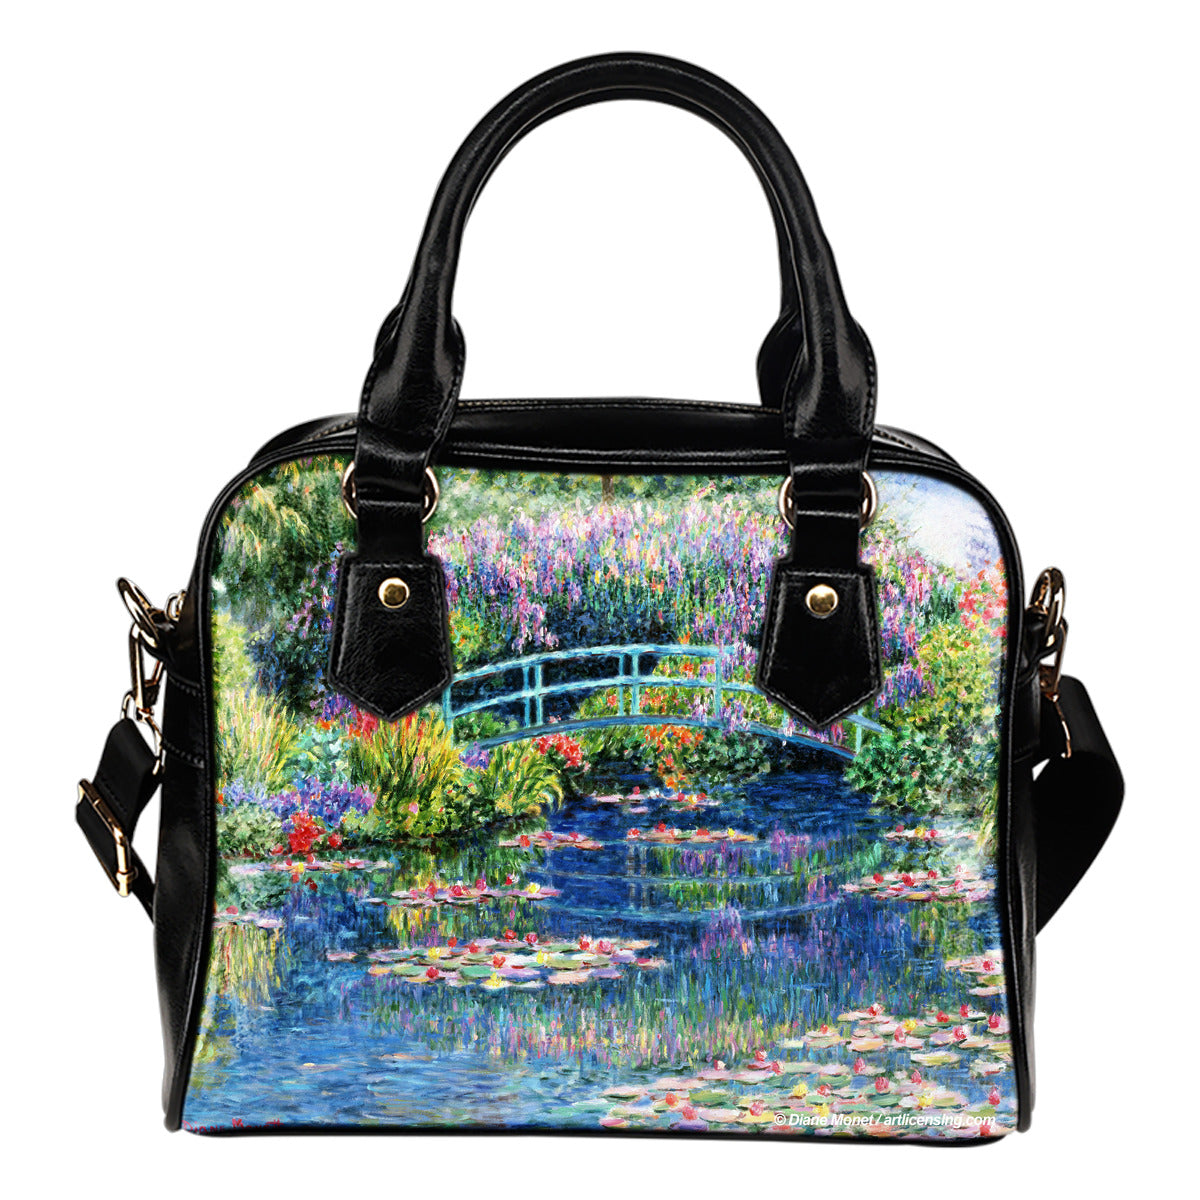 Diane Monet - Calm Afternoon - Shoulder Handbag